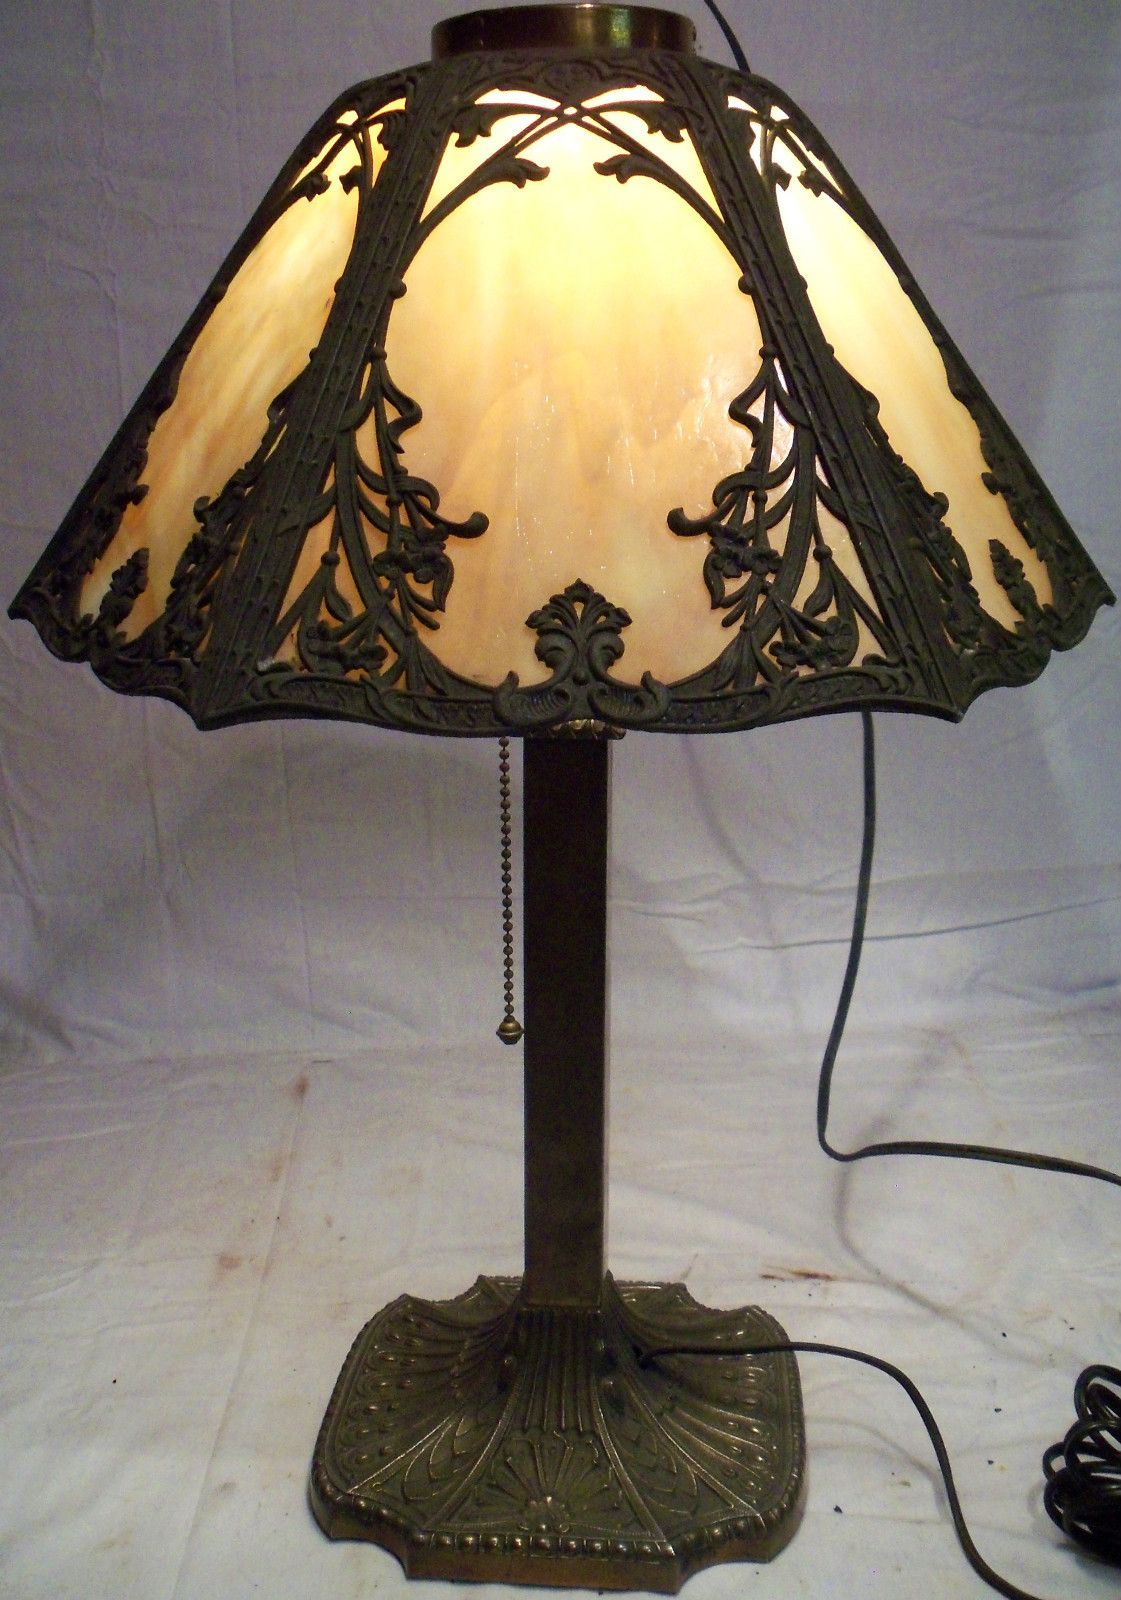 Antique slag glass table lamp 25 x 18 vintage 2 pinterest antique victorian old miller slag stained glass shade table lamp light geotapseo Choice Image